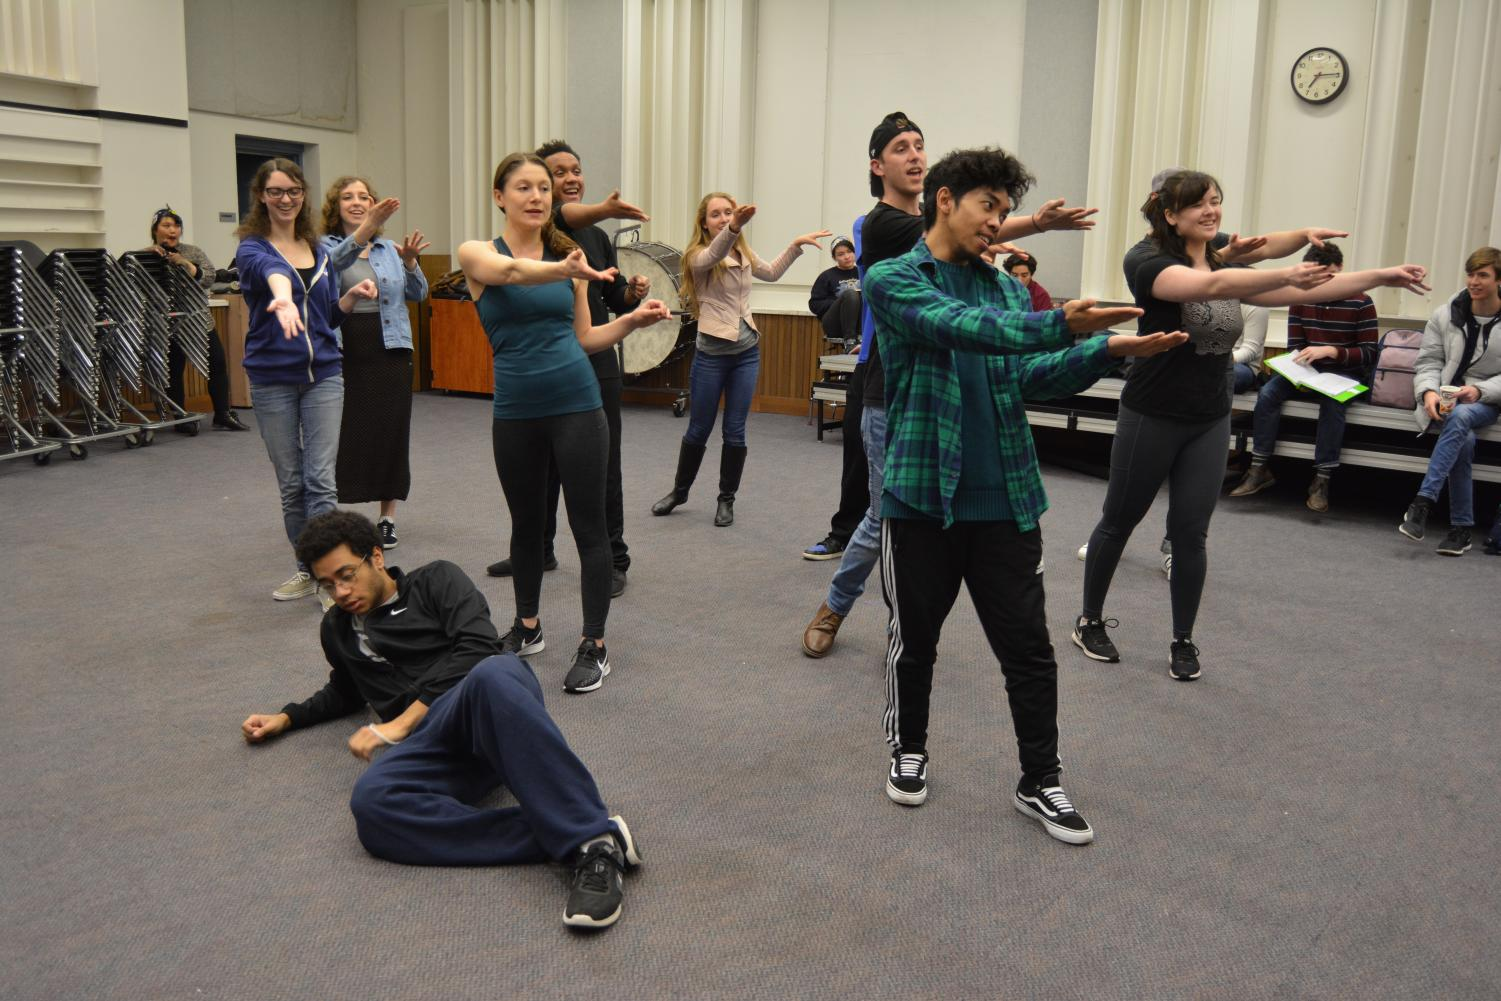 Drama students rehearsing song piece in the music building at DVC Pleasant Hill campus. (Samantha Laurey/The Inquirer)